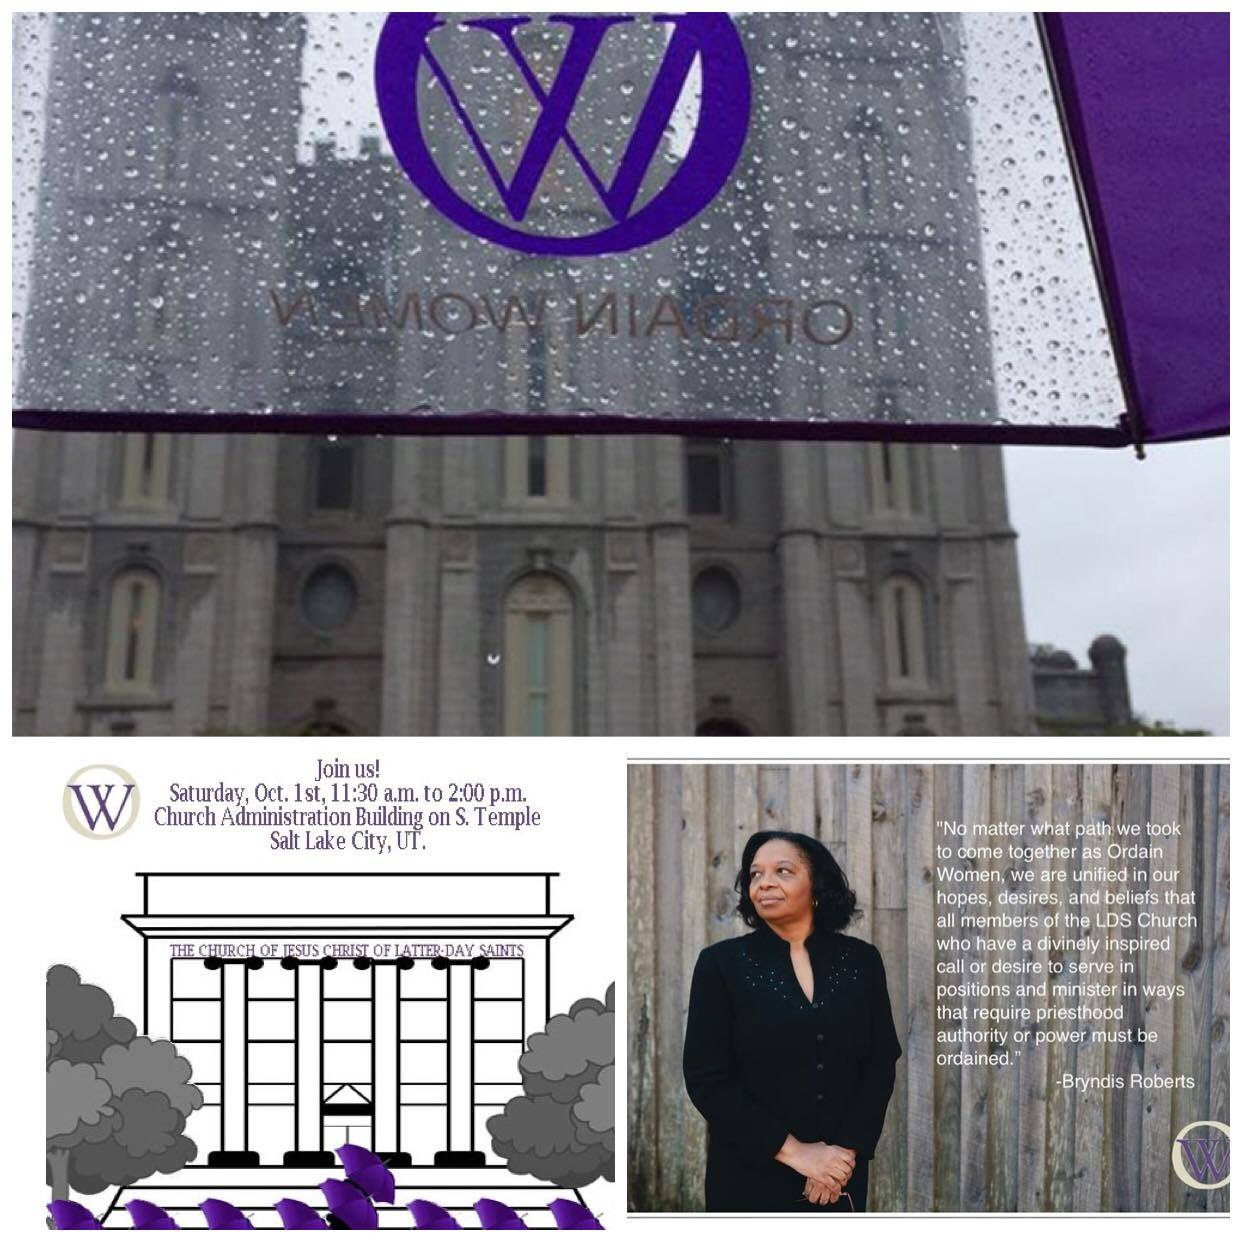 "Picture collage, with three pictures. The top picture is a view of the Salt Lake City temple in the rain, as seen from under the rim of an Ordain Women umbrella. The bottom left picture is a clipart style picture of the church administration building. Stick figures holding purple umbrellas are lined up outside the front of the building. At the top of the image text reads, ""Join us! Saturday, Oct. 1st, 11:30 a.m. to 2:00 p.m., Church Administration Building on S. Temple Salt Lake City, UT. Text at the bottom of the image reads, ""Is there no one who will hear me?"" The bottom right picture is a photo of Ordain Women chair, Bryndis Roberts, with the text, ""No matter what path we took to come together as Ordain Women, we are unified in our hopes, desires, and beliefs that all members of the LDS Church who have a divinely inspired call or desire to serve in positions and minister in ways that require priesthood authority or power must be ordained."" -Bryndis Roberts"